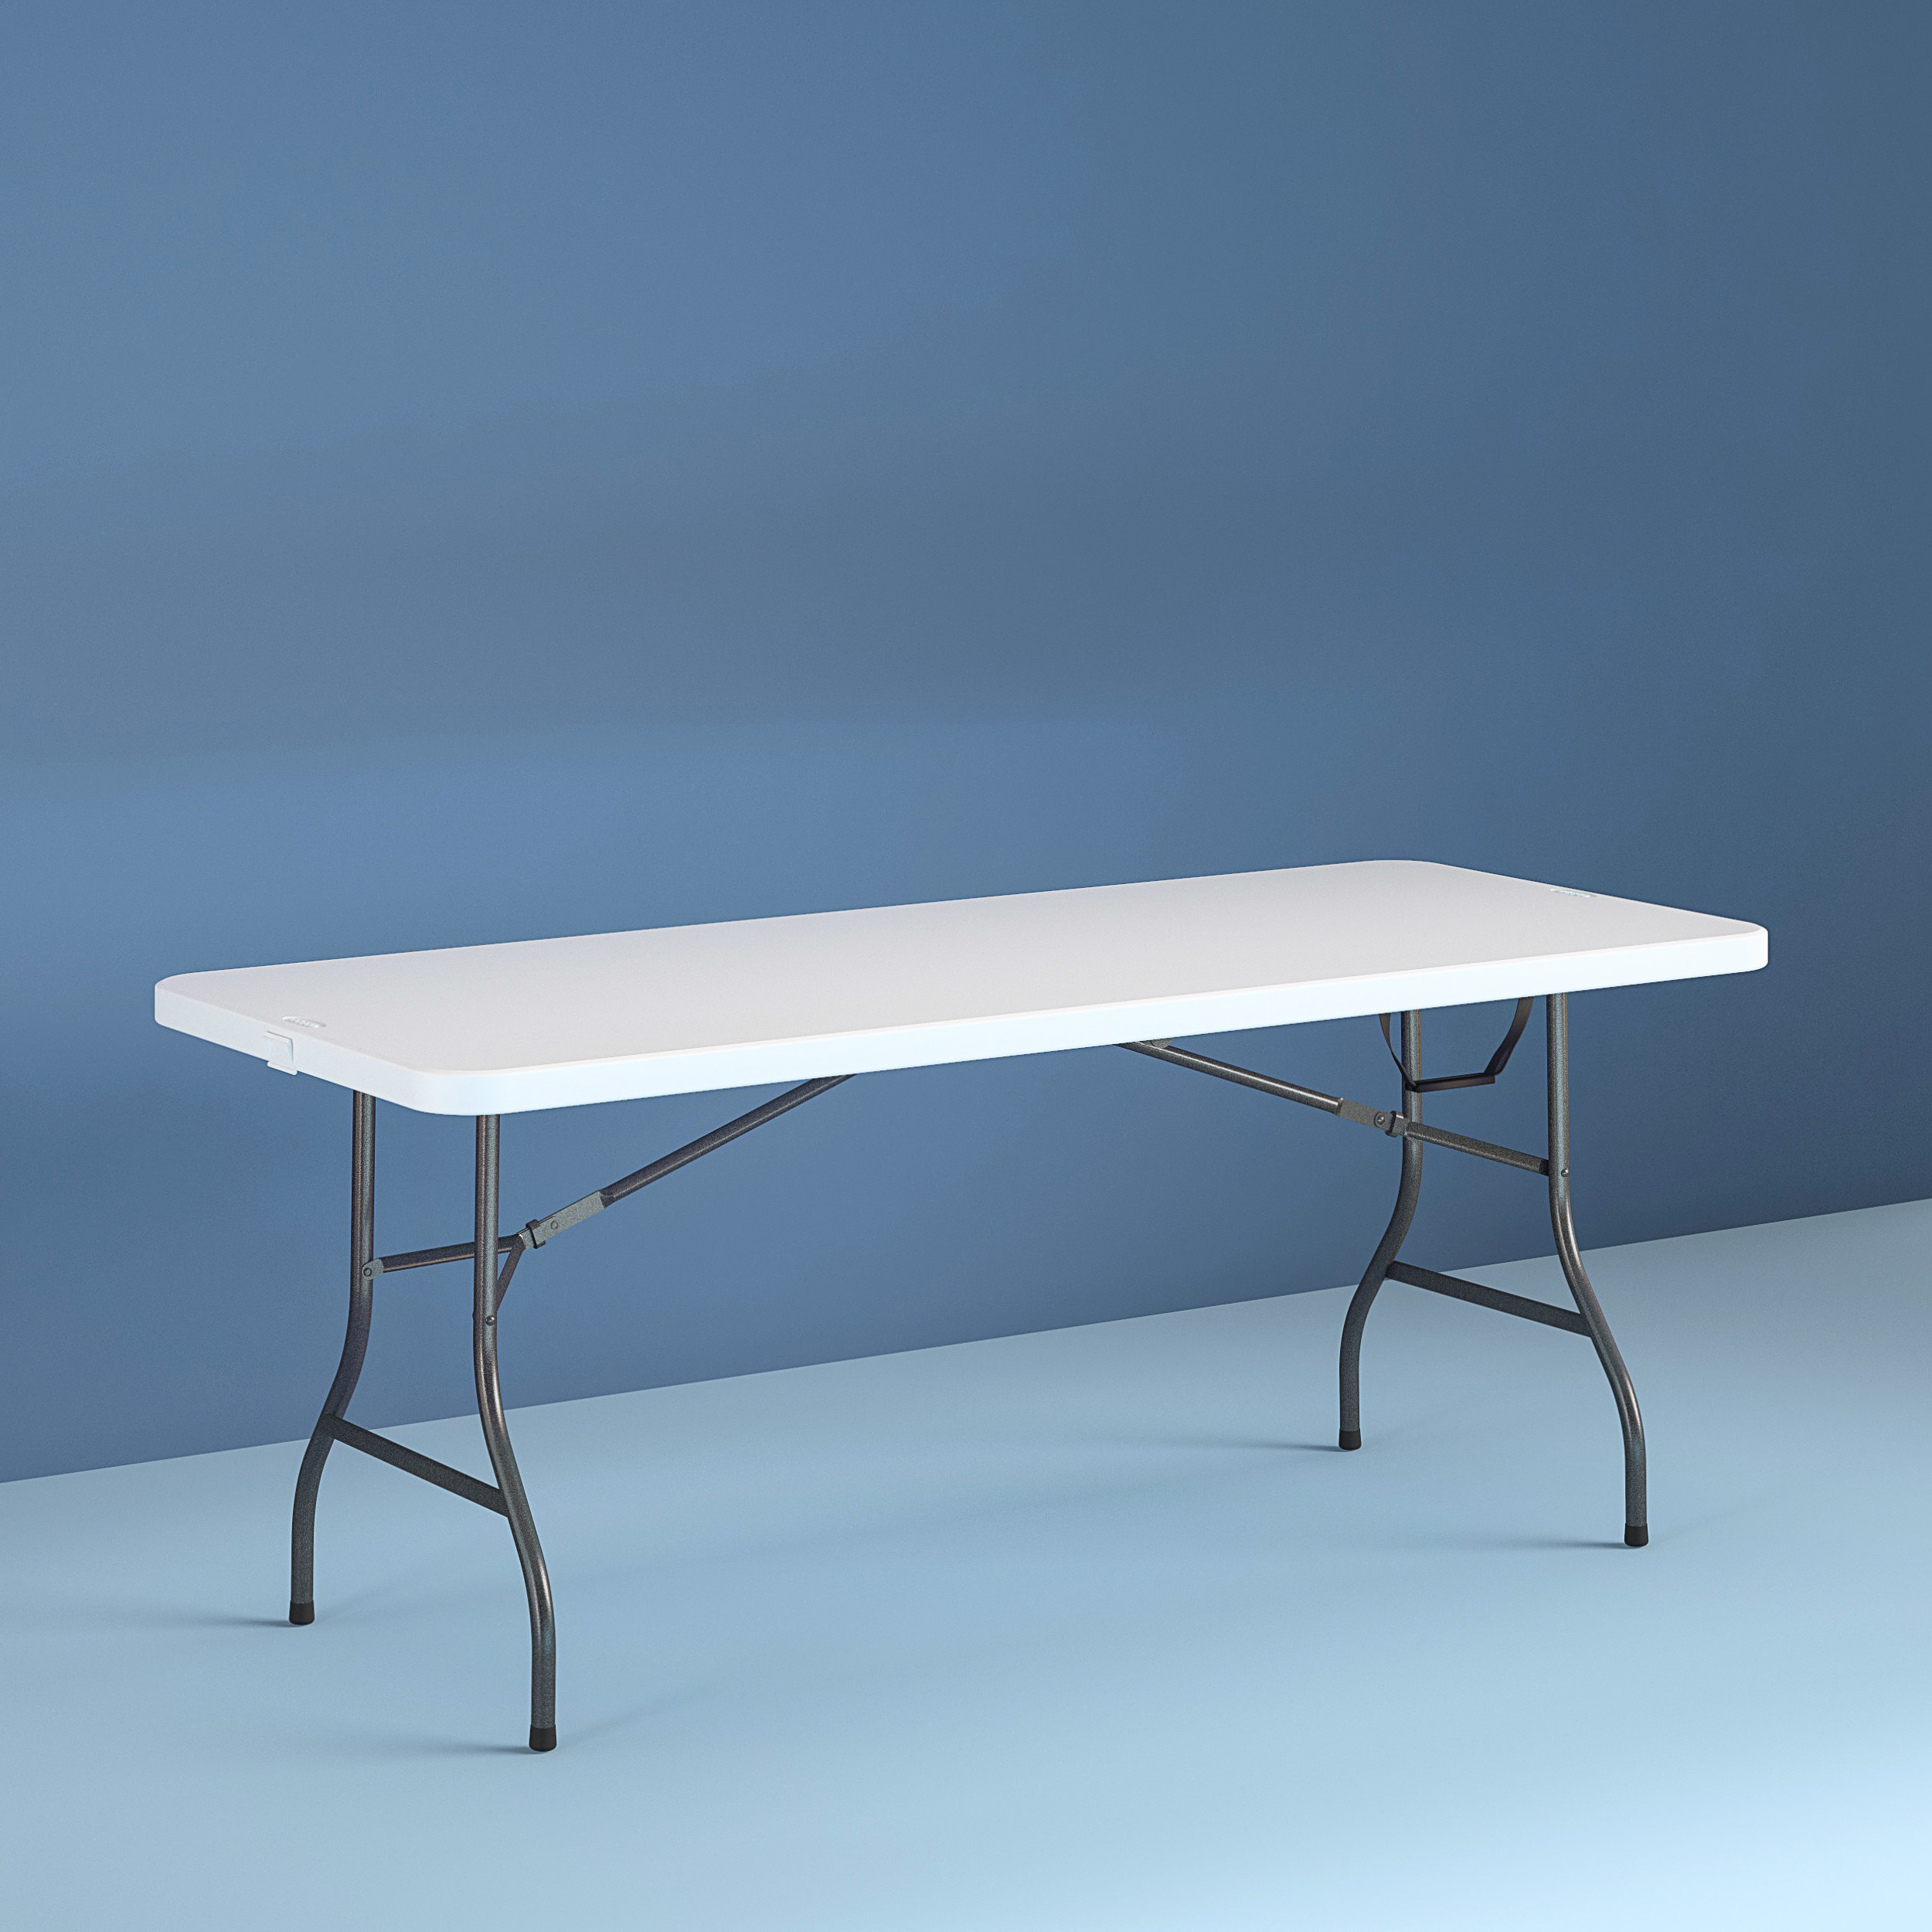 a white folding table with metal legs